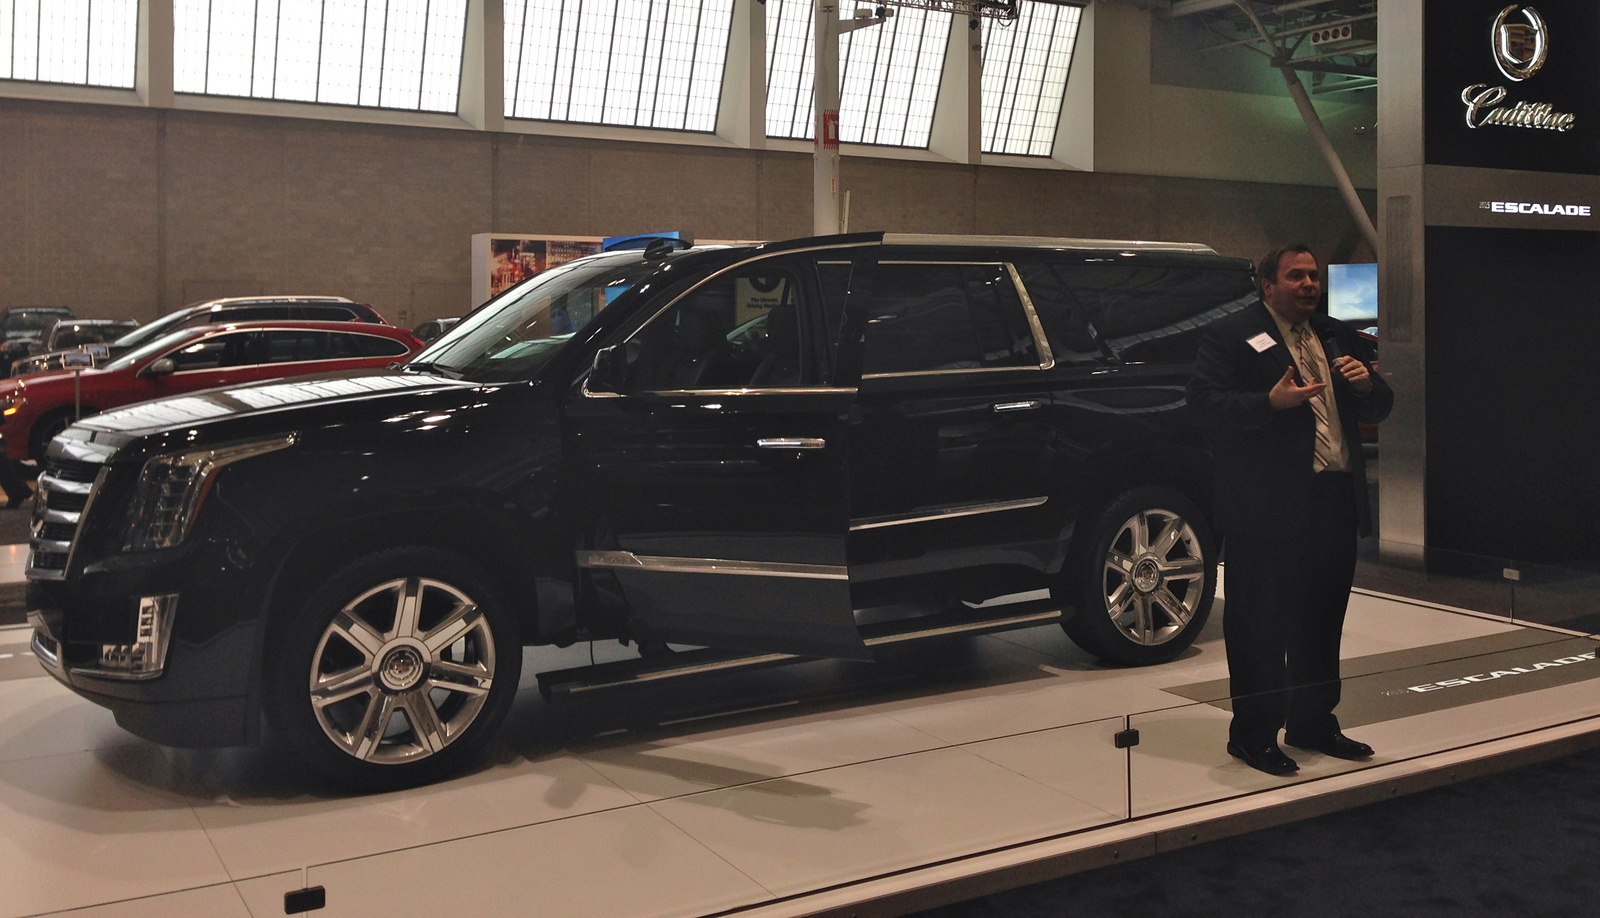 2015 cadillac escalade luxury trim vs premium differences. Black Bedroom Furniture Sets. Home Design Ideas